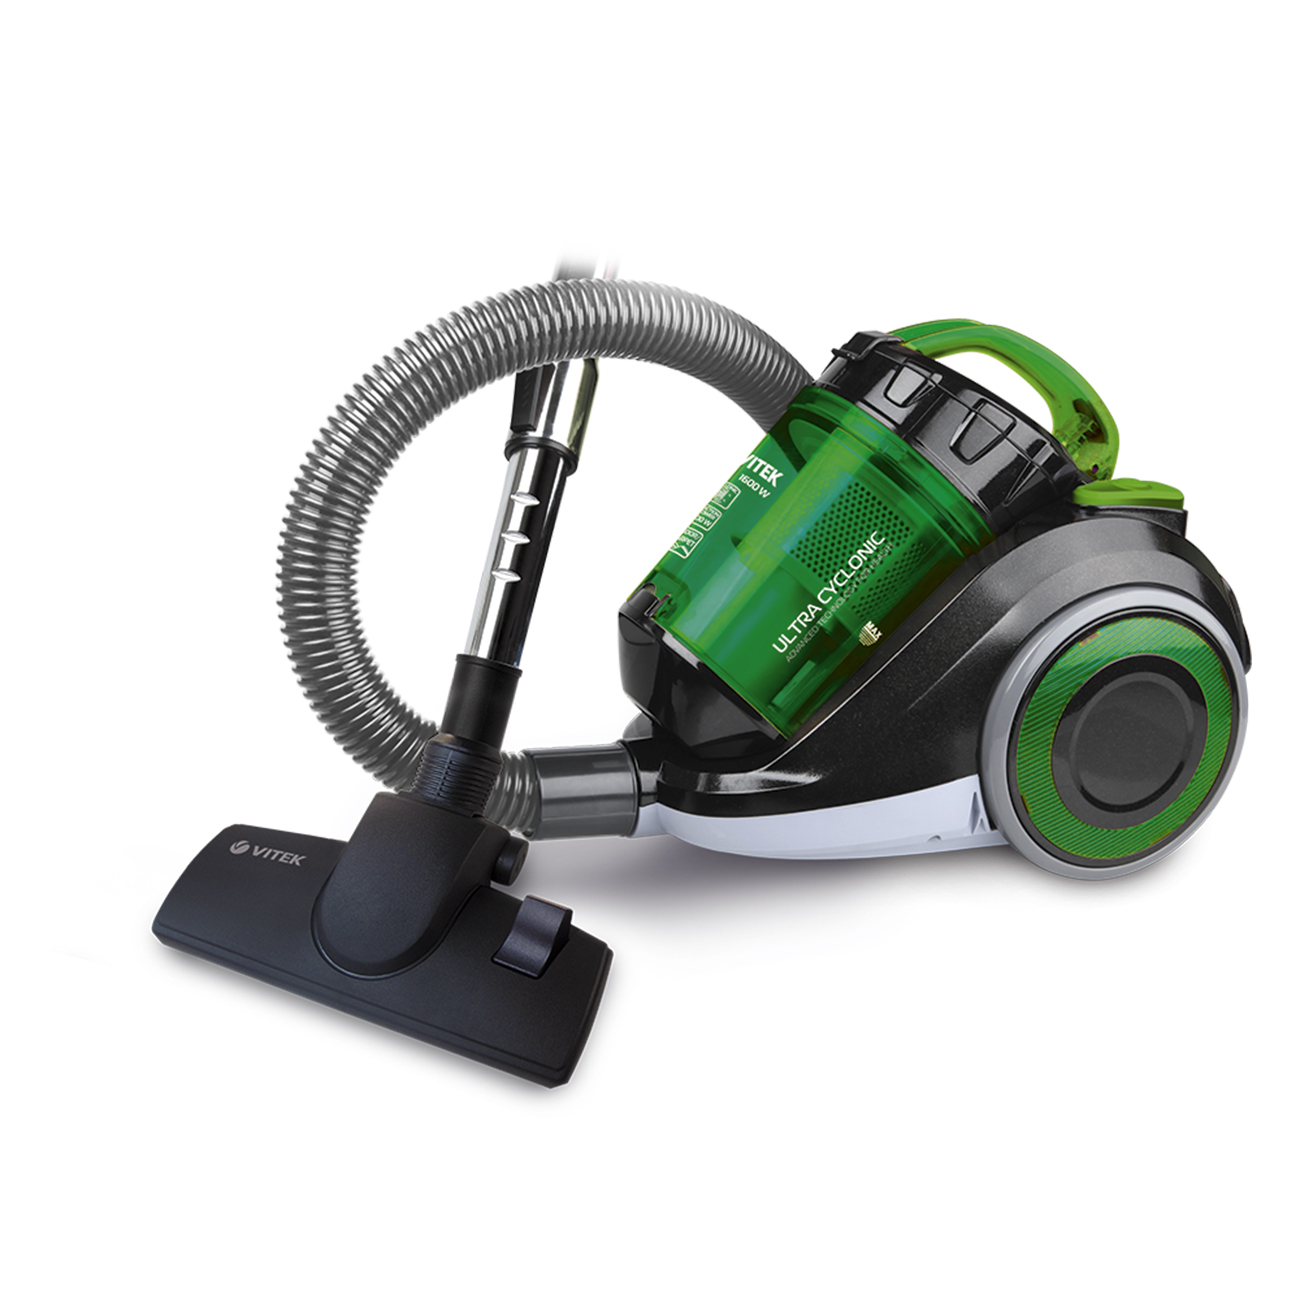 Electric vacuum cleaner Vitek VT-1815 G